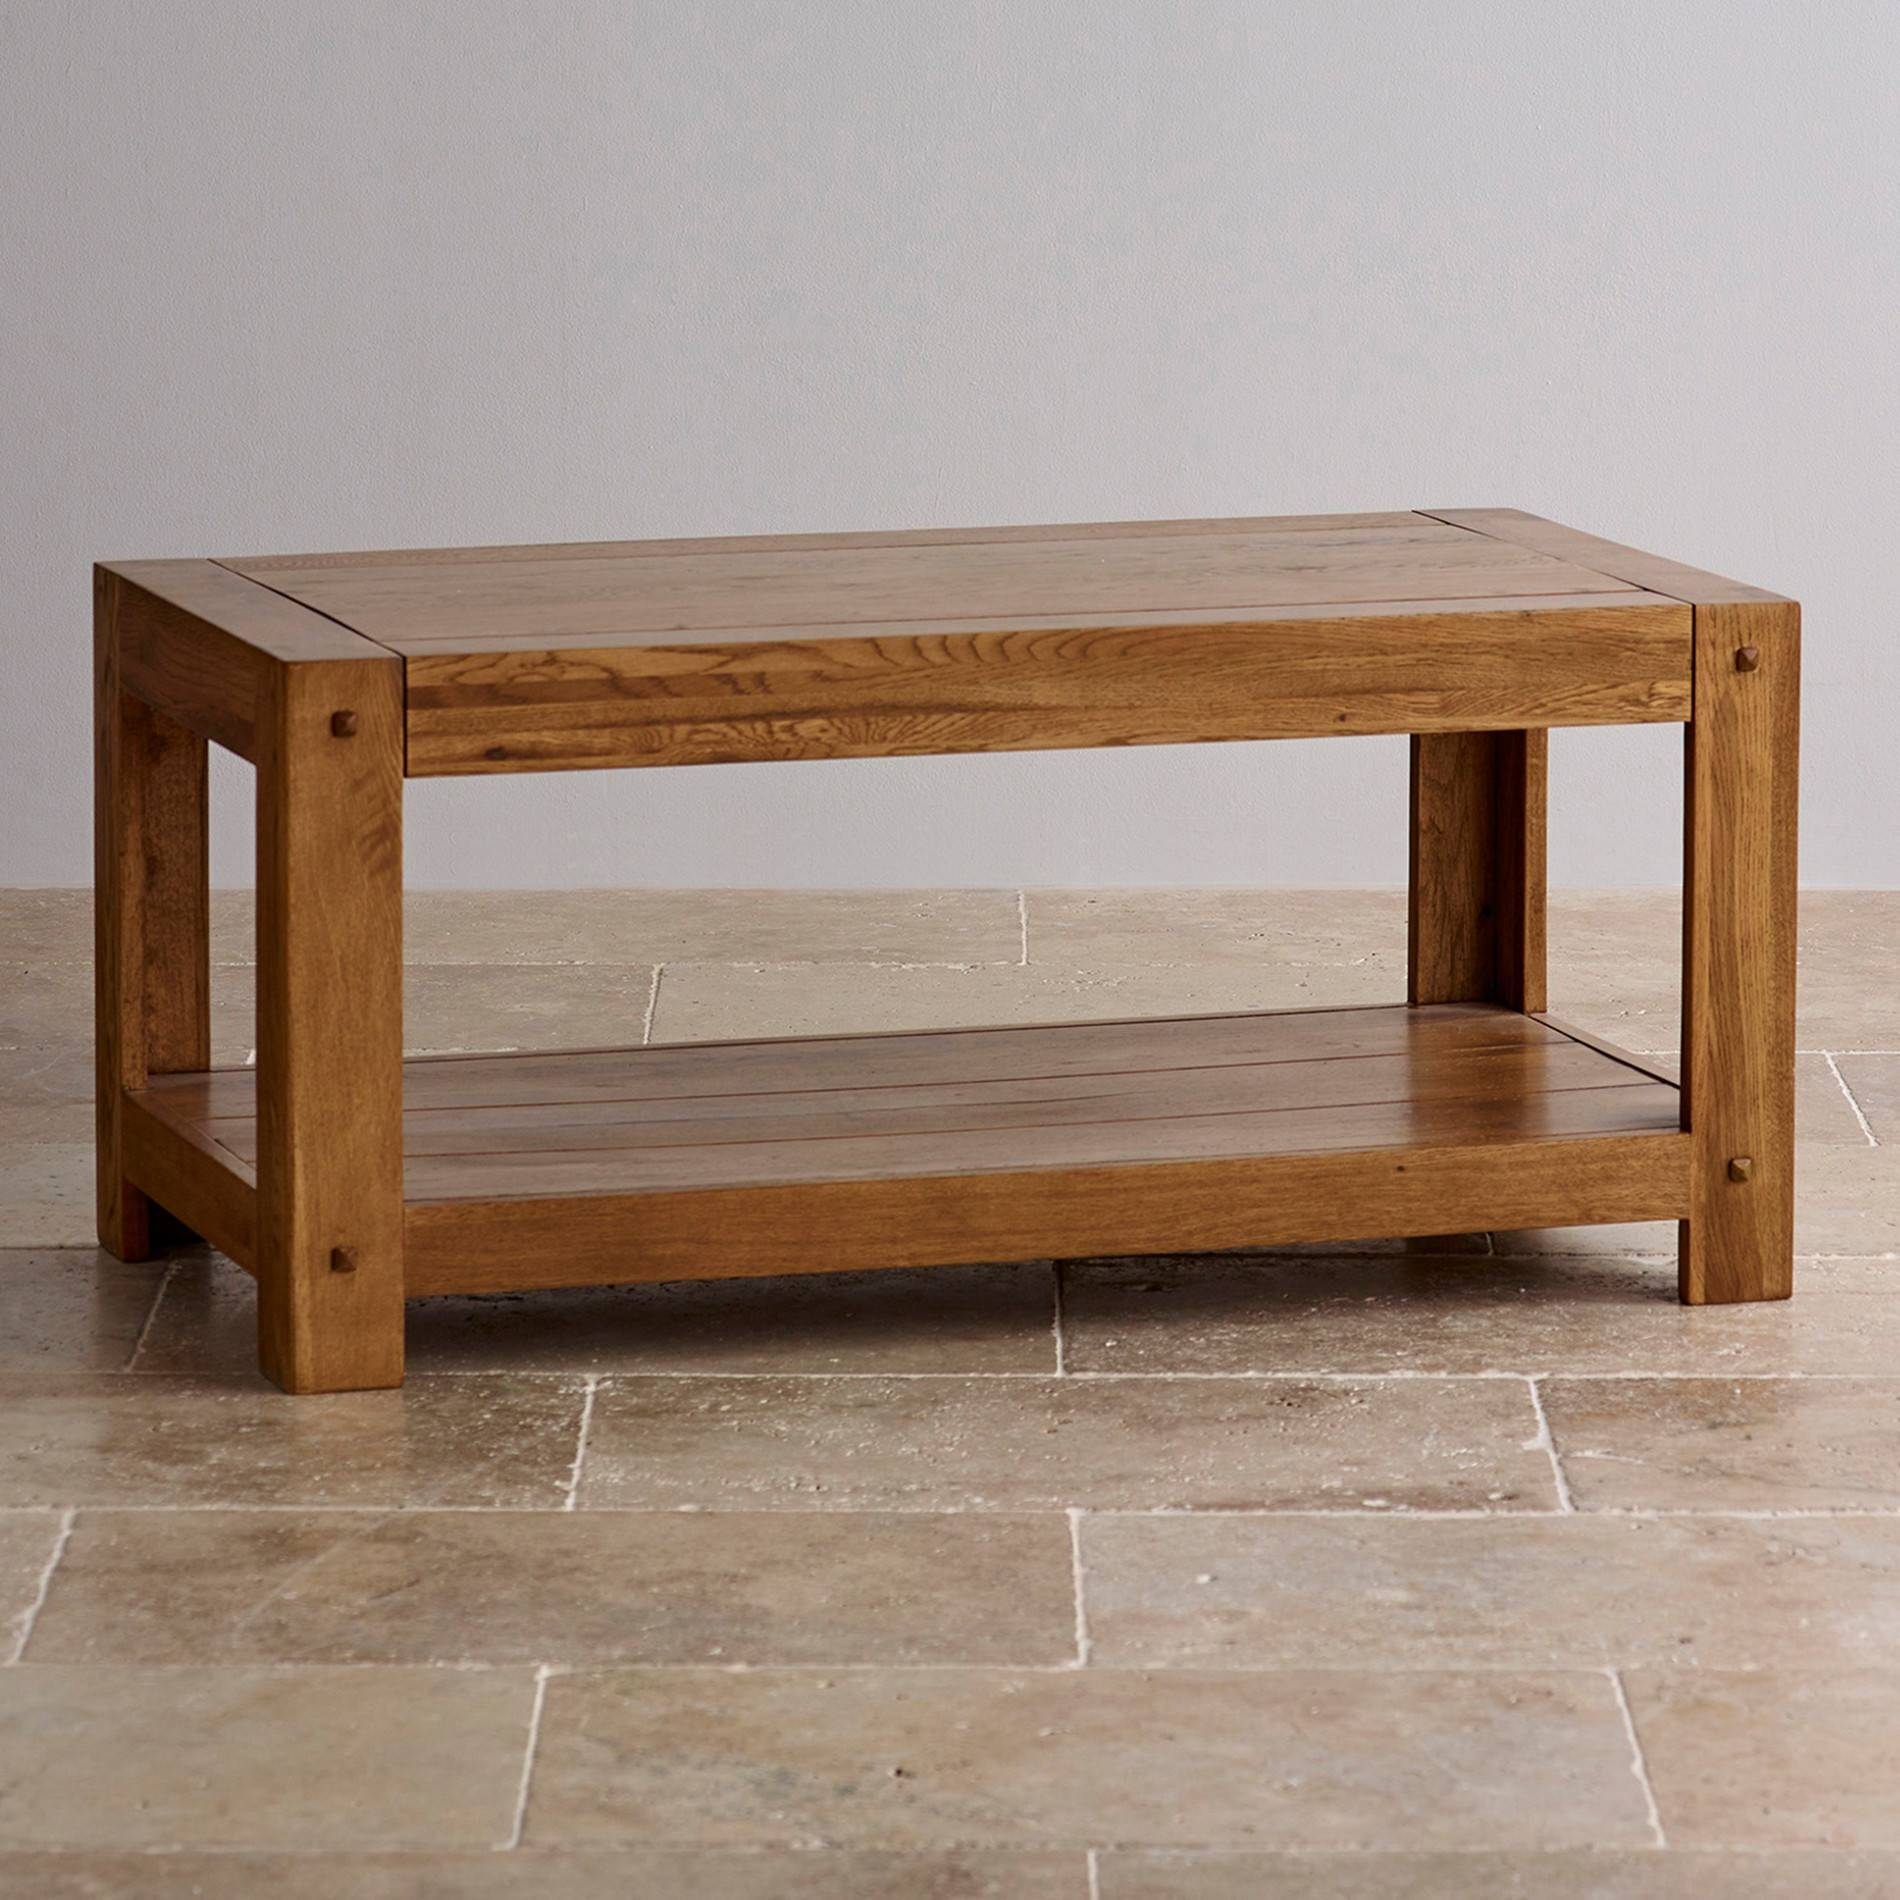 Quercus Coffee Table In Rustic Solid Oak | Oak Furniture Land In Small Oak Coffee Tables (View 7 of 15)